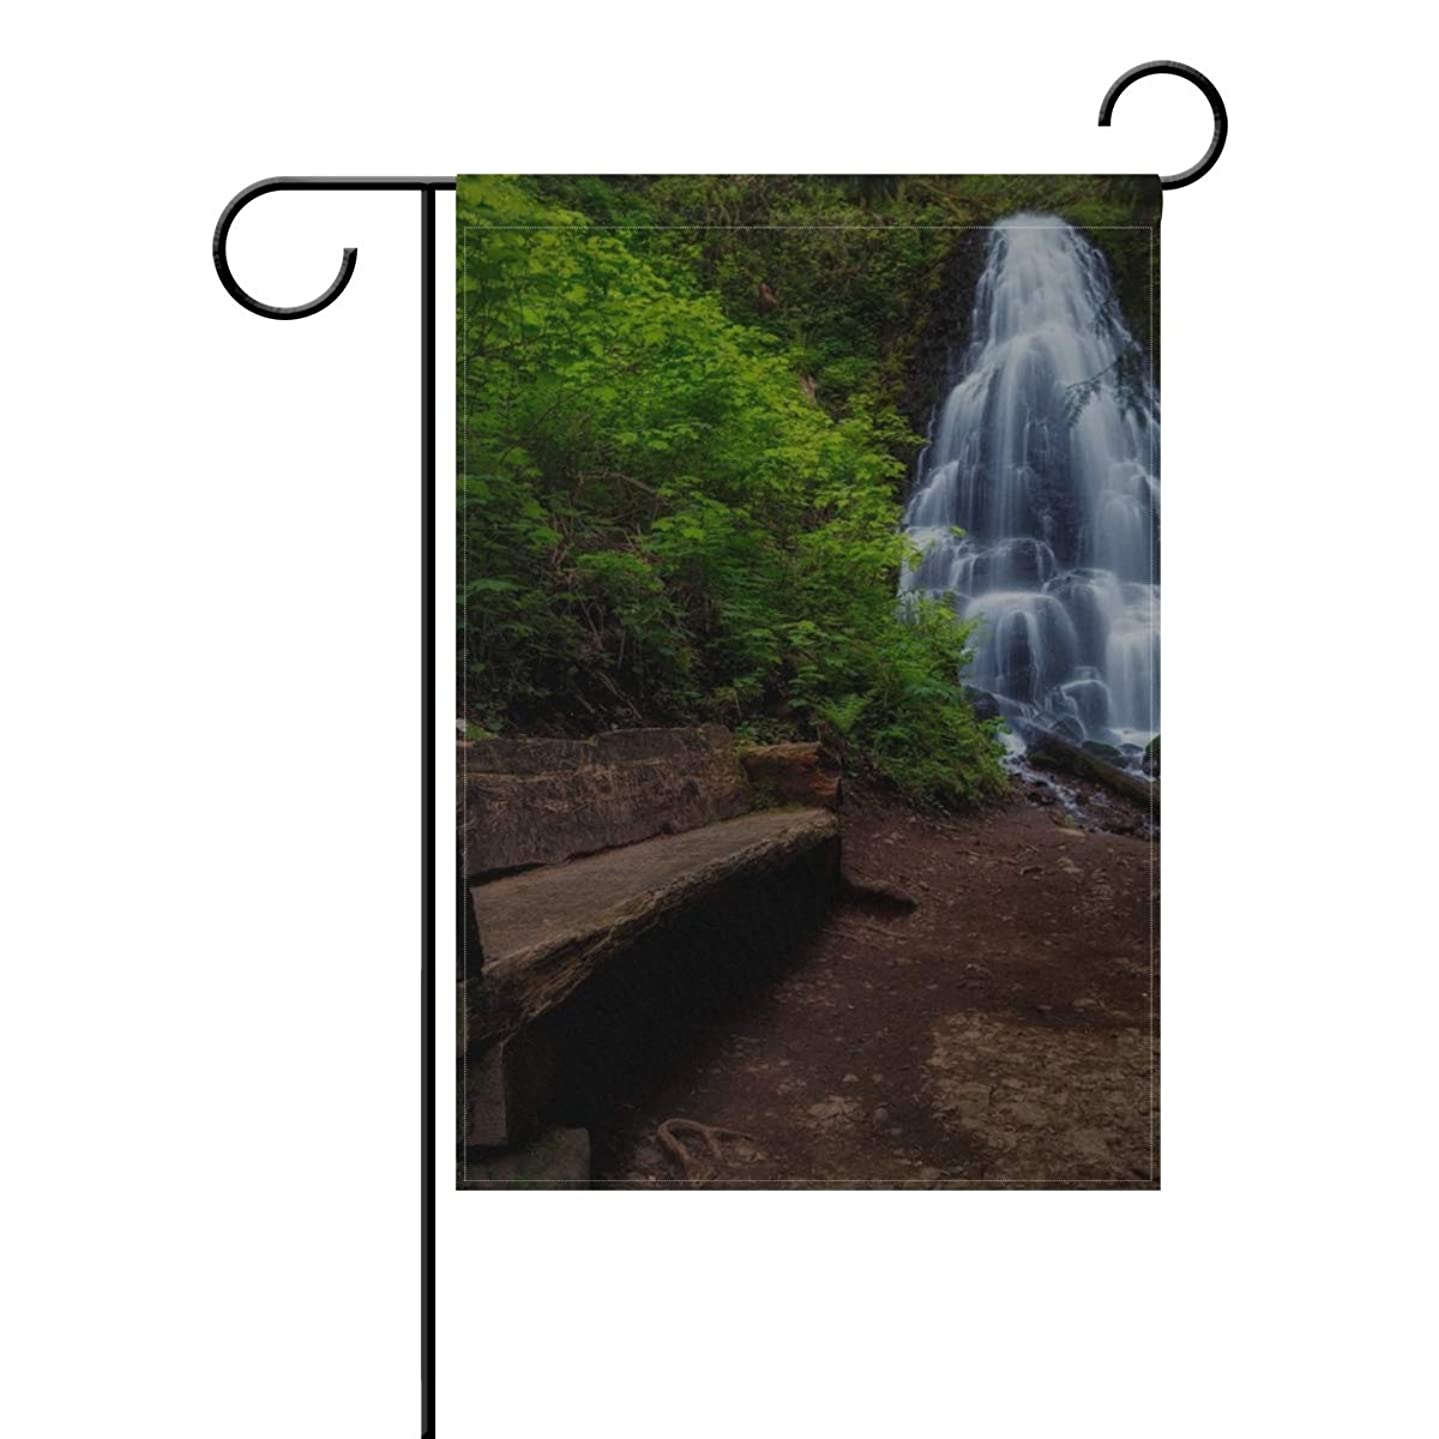 MAXM Garden Flag Waterfall Bench Water Trees 12x18 Inches(without Flagpole)